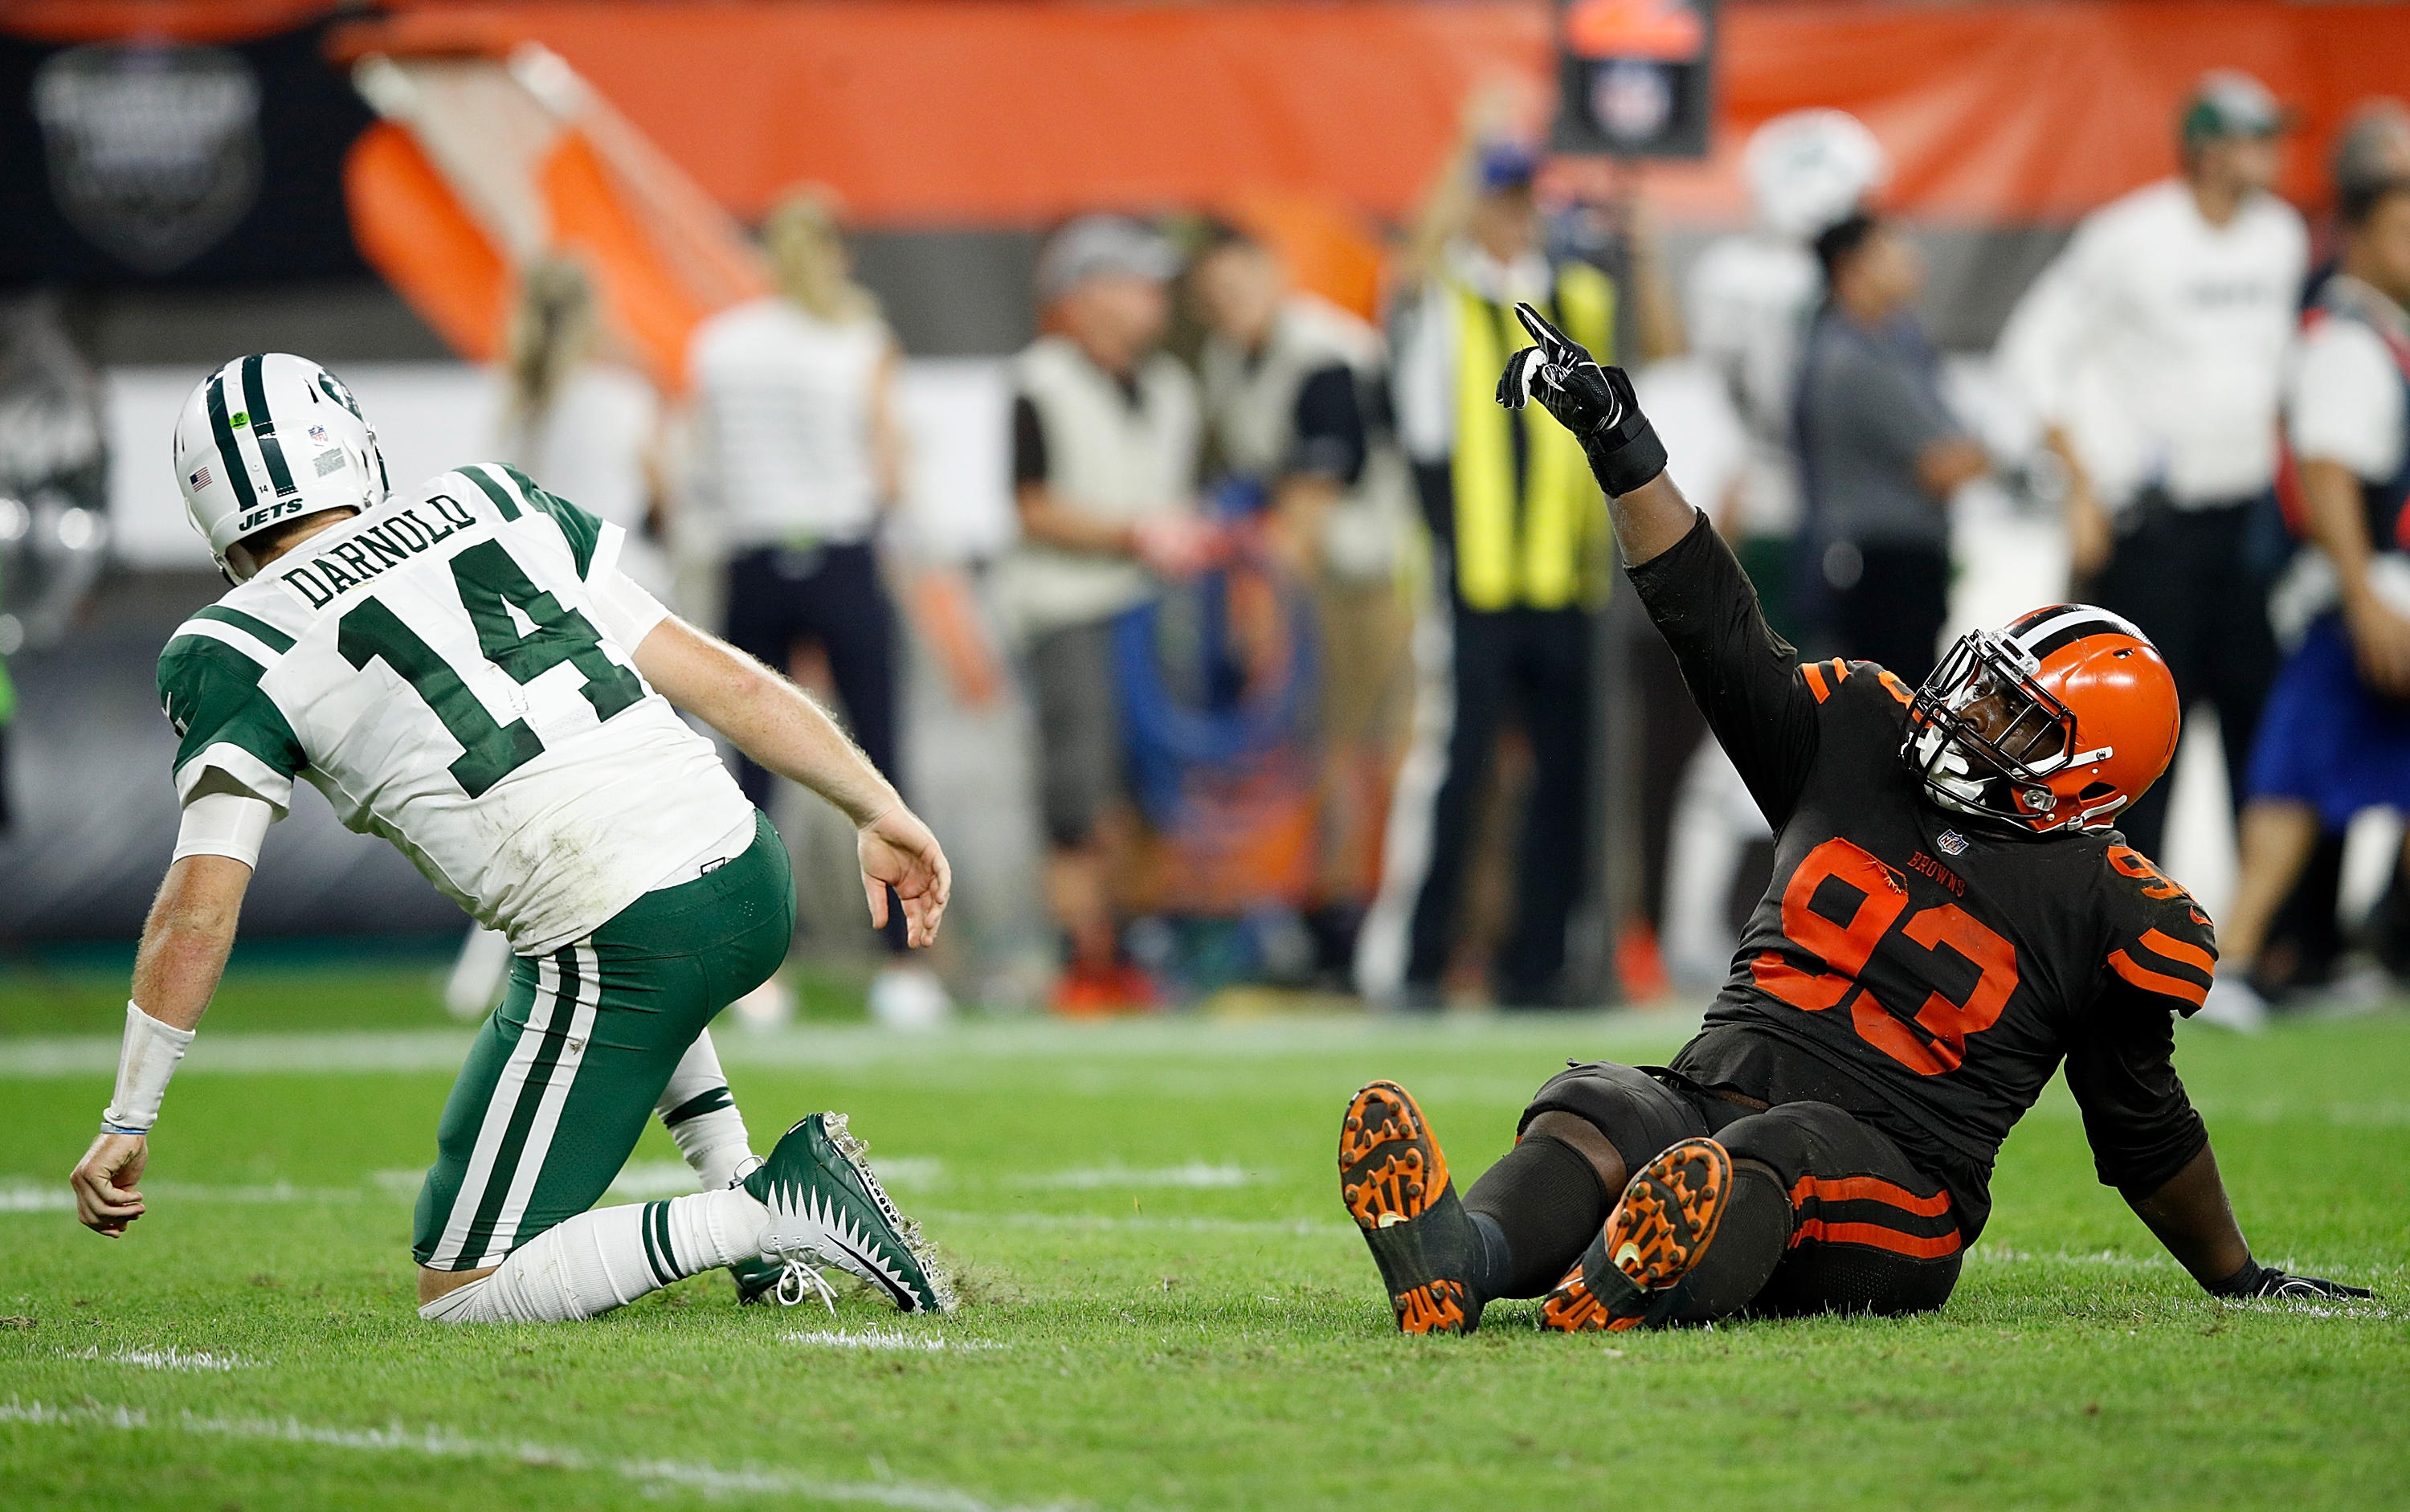 Cleveland Browns win for the first time since 2016 - CBS News